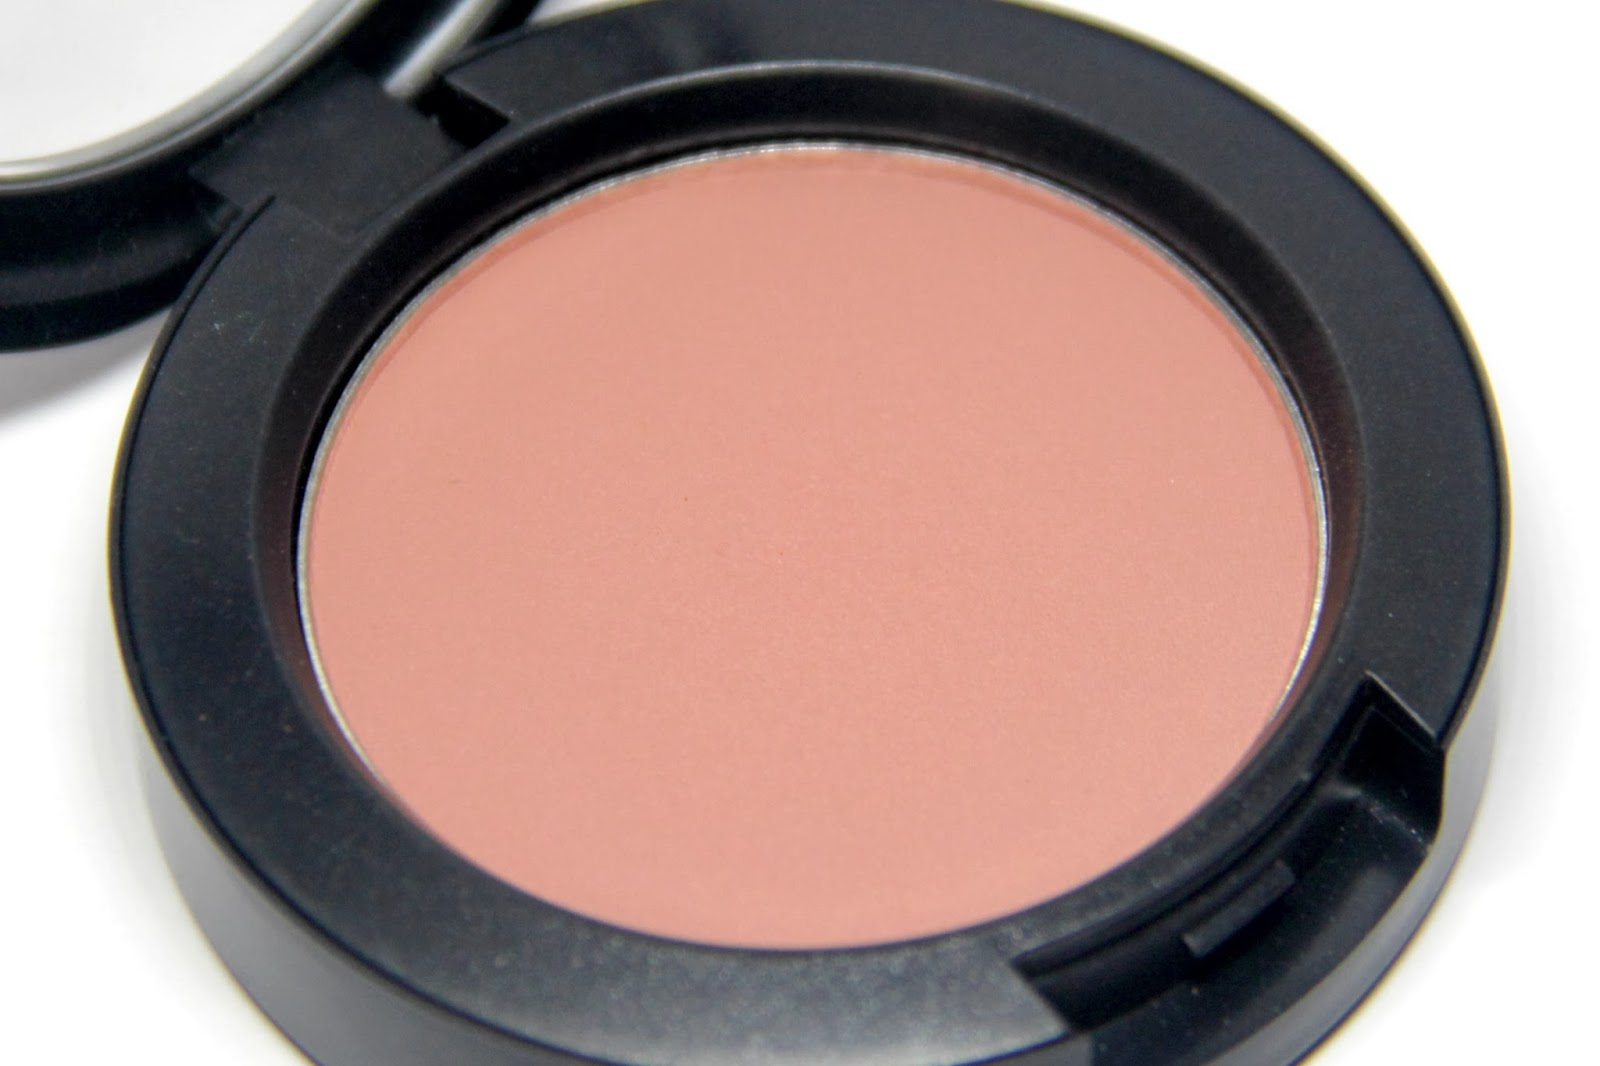 The Pretty Lil Things Blog: REVIEW: MAC's Sheertone Blush in Blushbaby